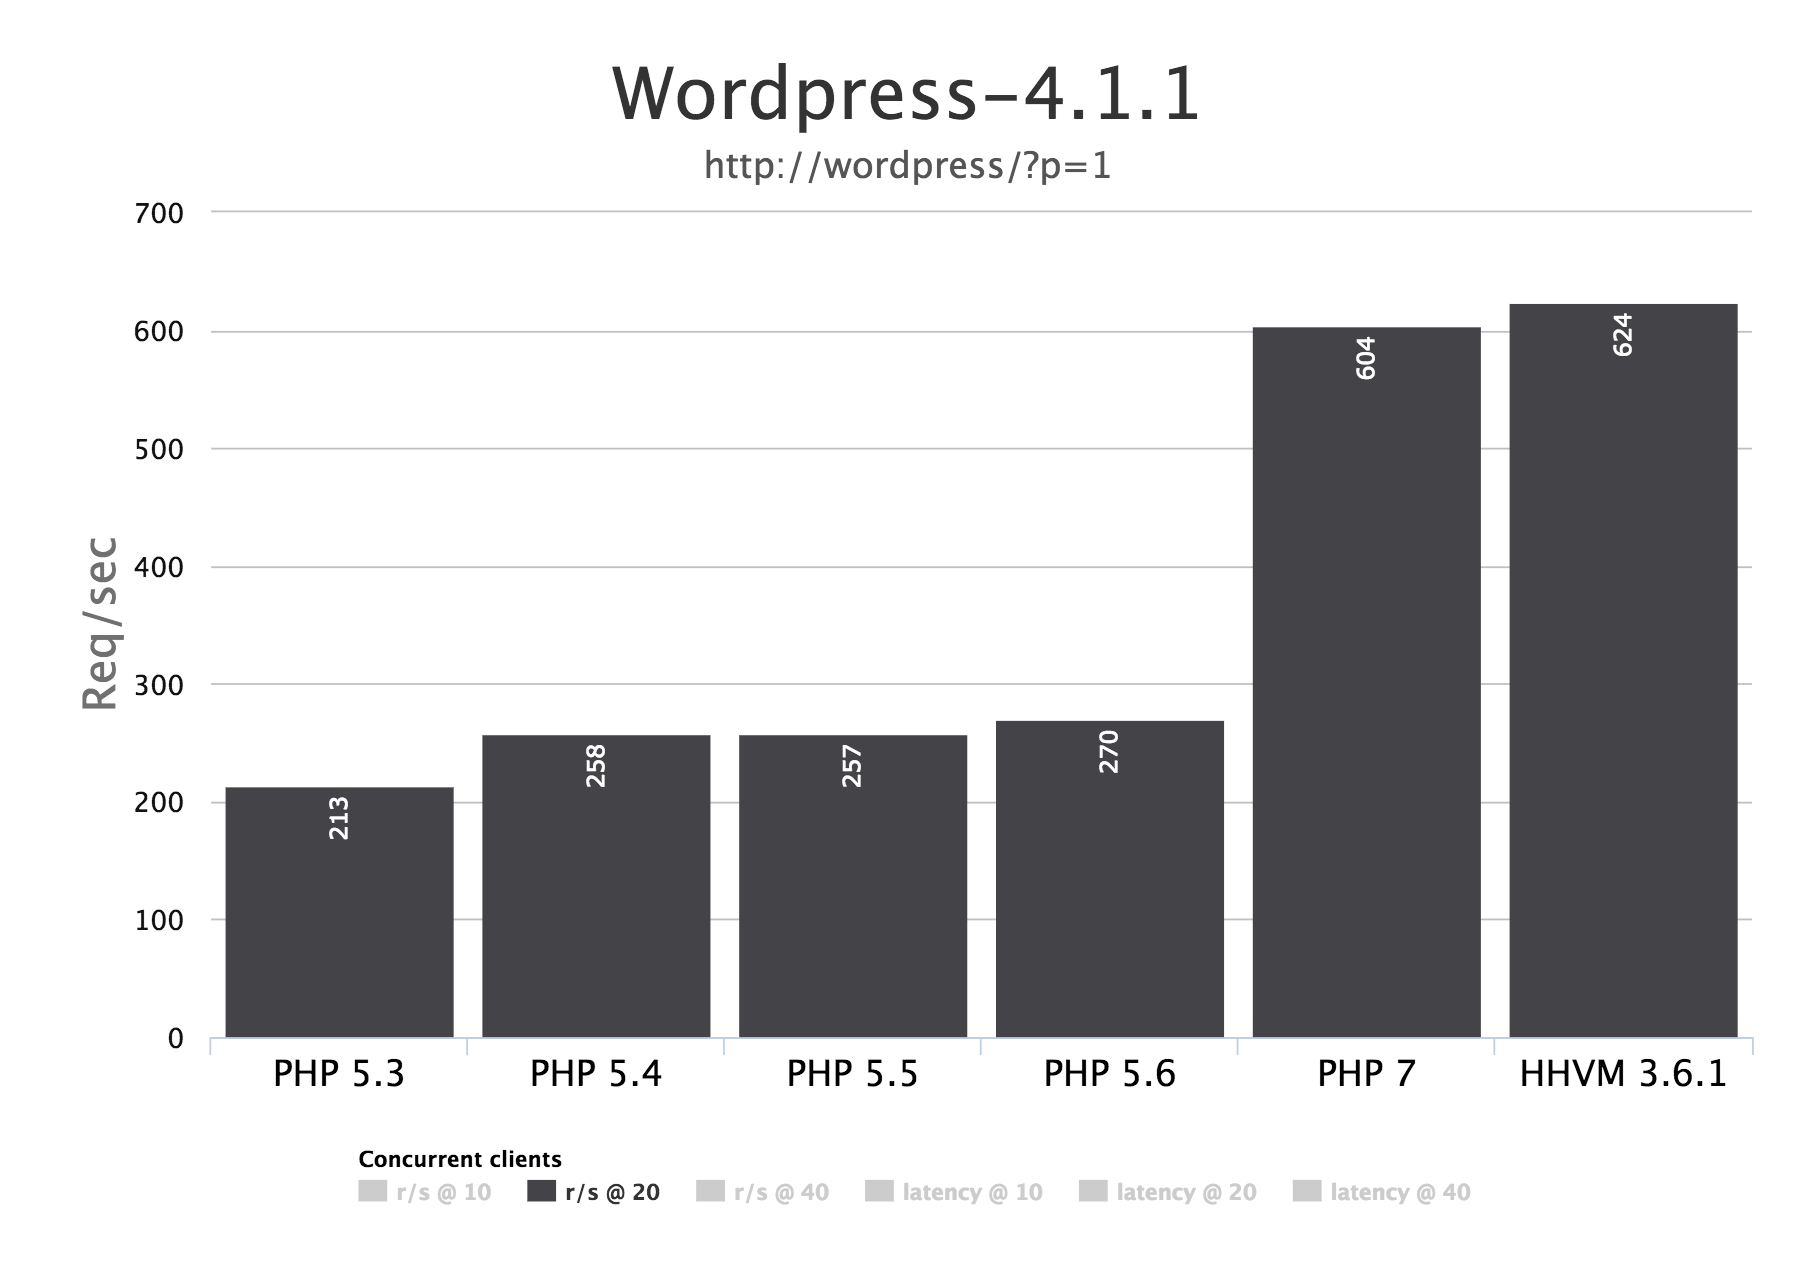 Wordpress 4.1.1